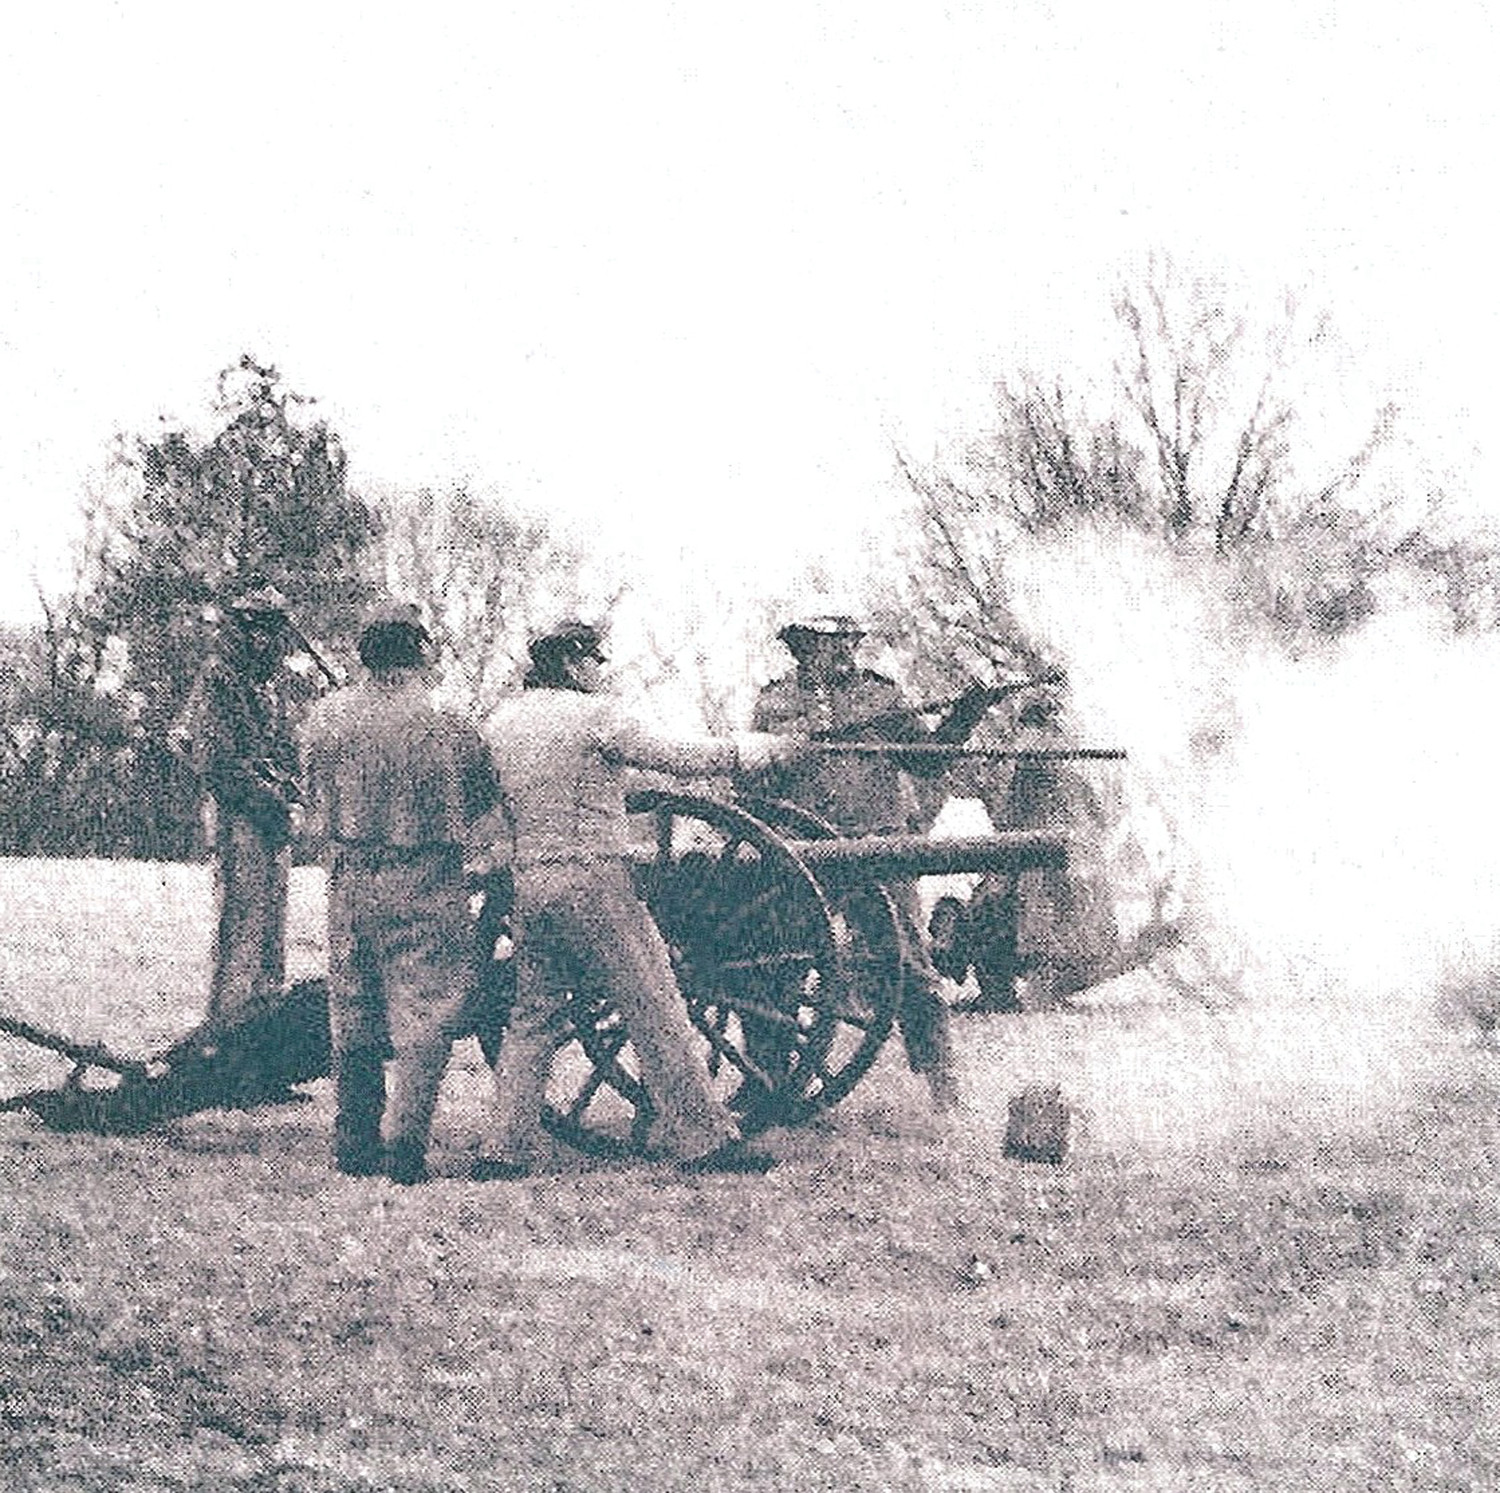 Reenactors of the Battle of Dingle's Mill shoot a cannon. The unknown soldier died from injuries sustained during that battle during the Civil War.